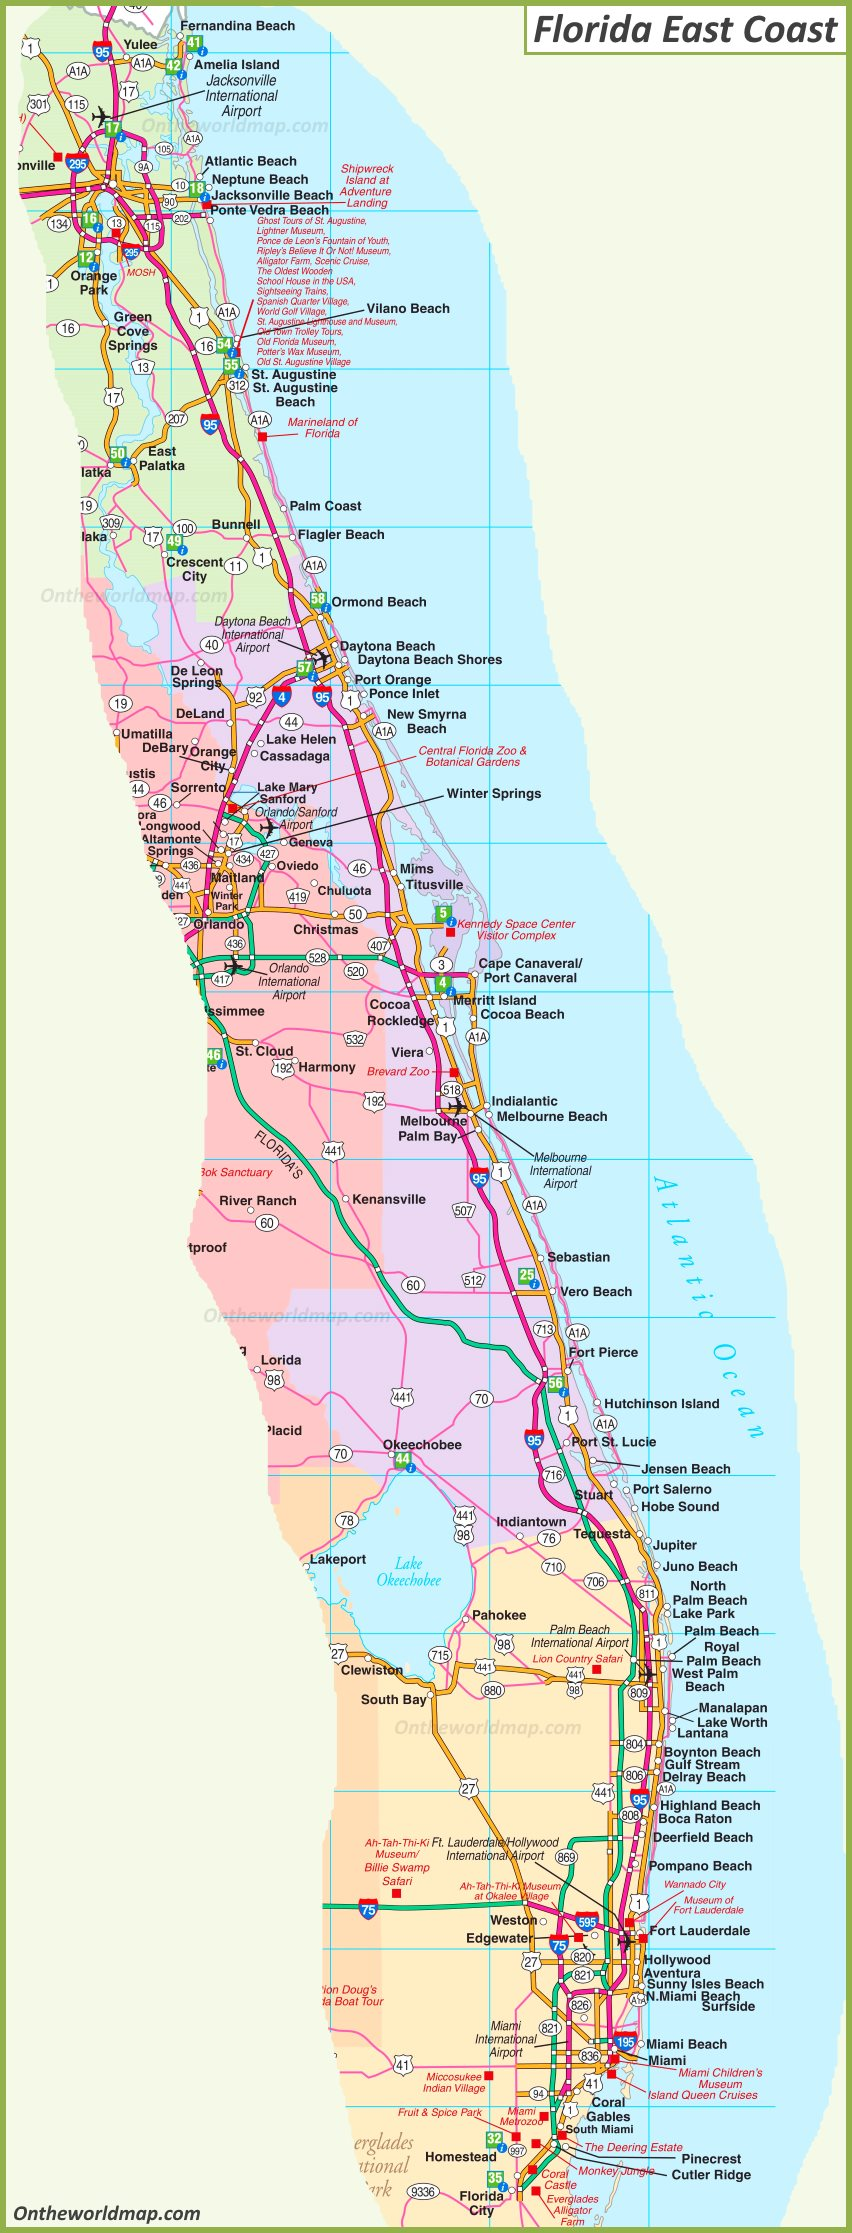 photograph relating to Printable Map of Florida Cities known as Map of Florida East Coastline